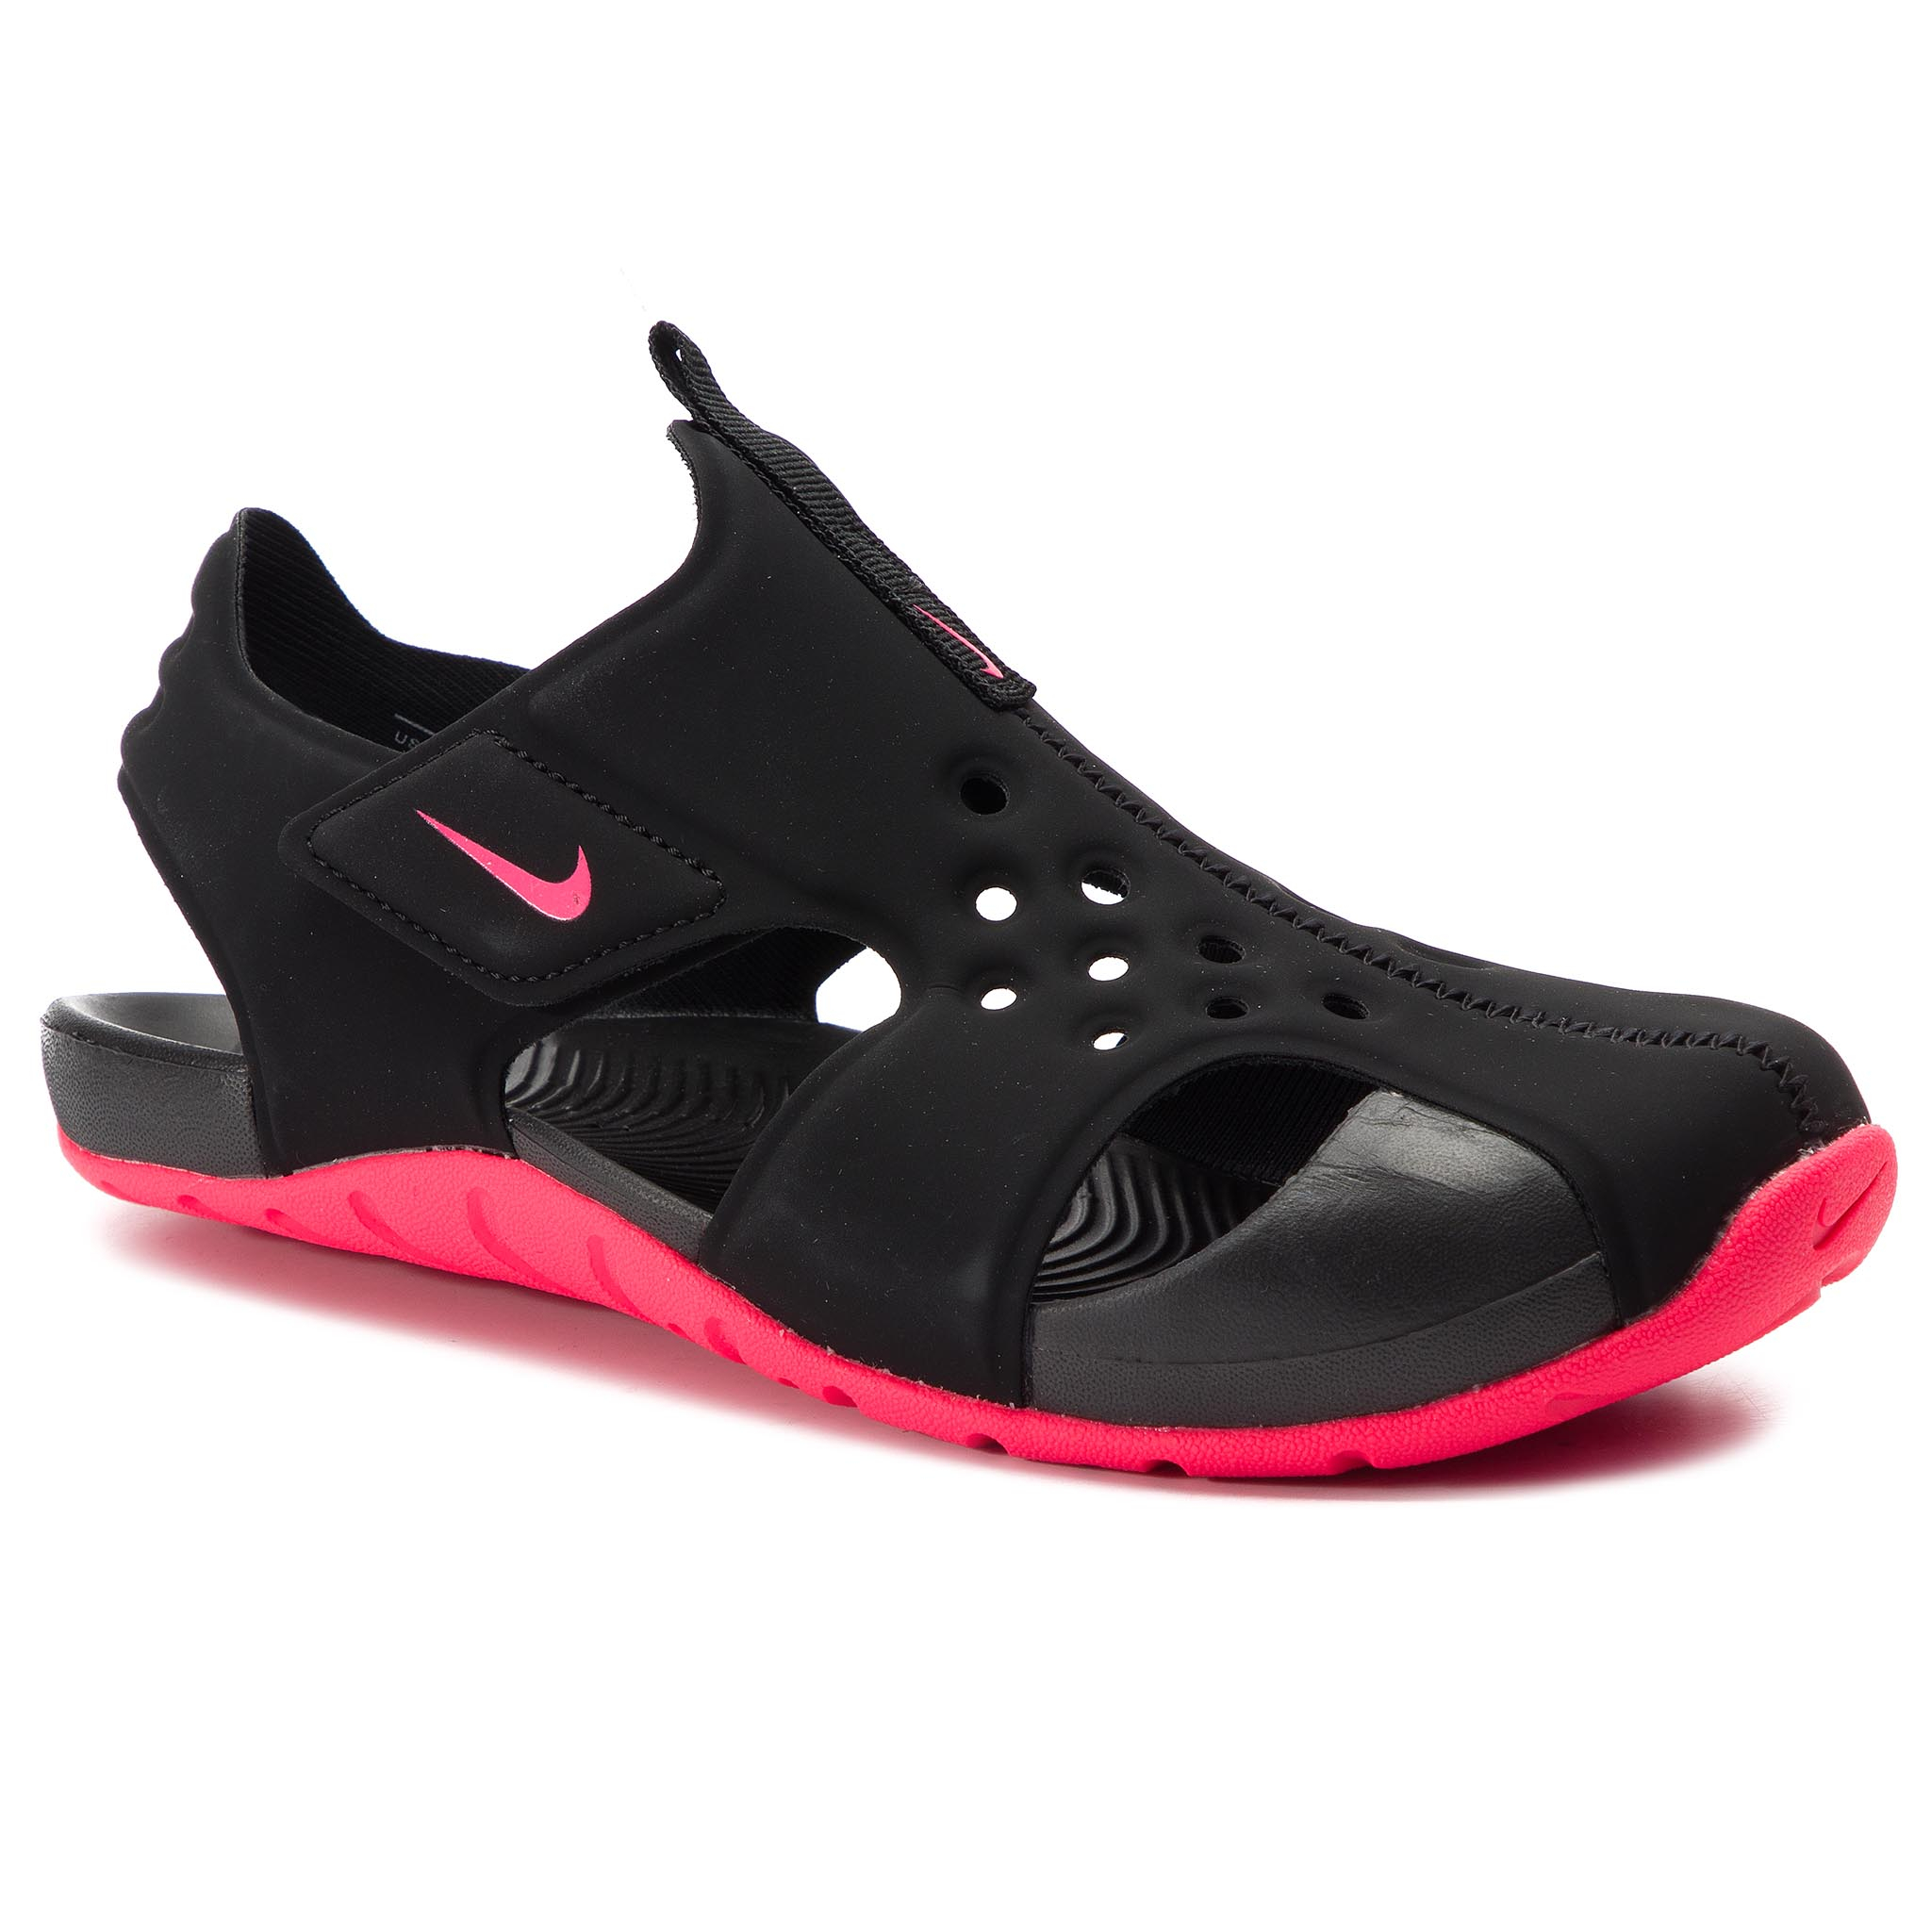 8f5a0b3bbef3 Sandály NIKE - Sunray Protect 2 (PS) 943826 003 Black Racer Pink